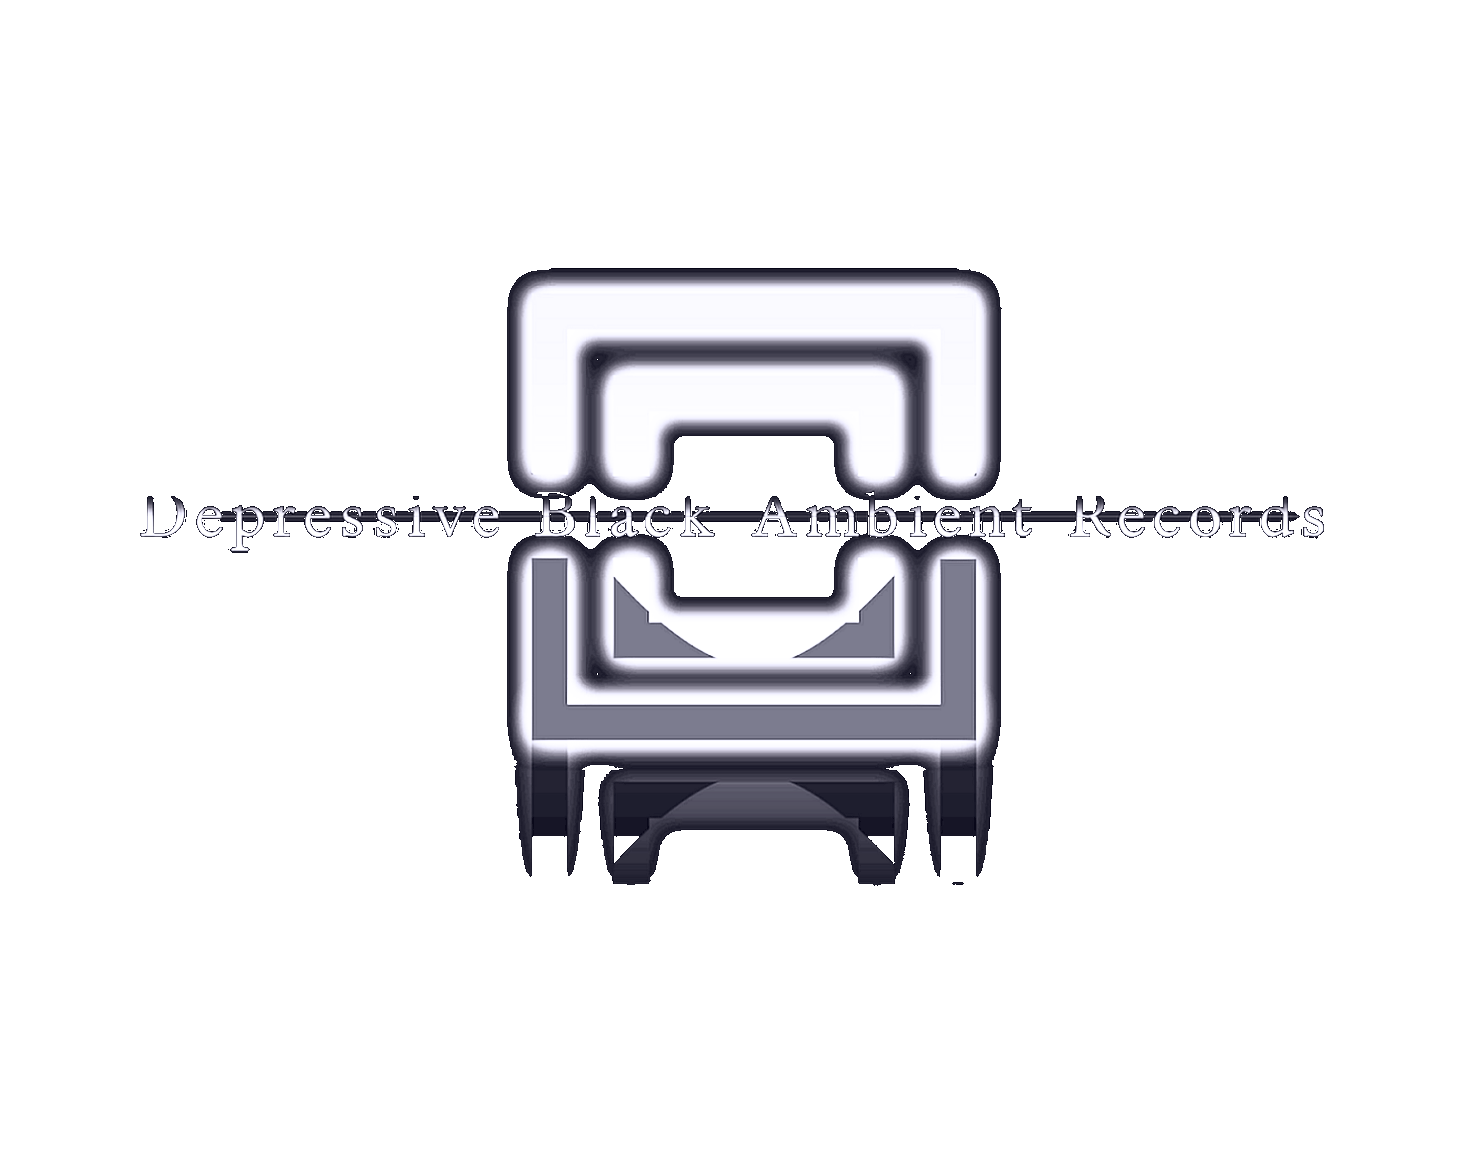 Depressive Black Ambient Records - Online Shop of Dark Music [ Black Metal ] [ Dark Ambient ]